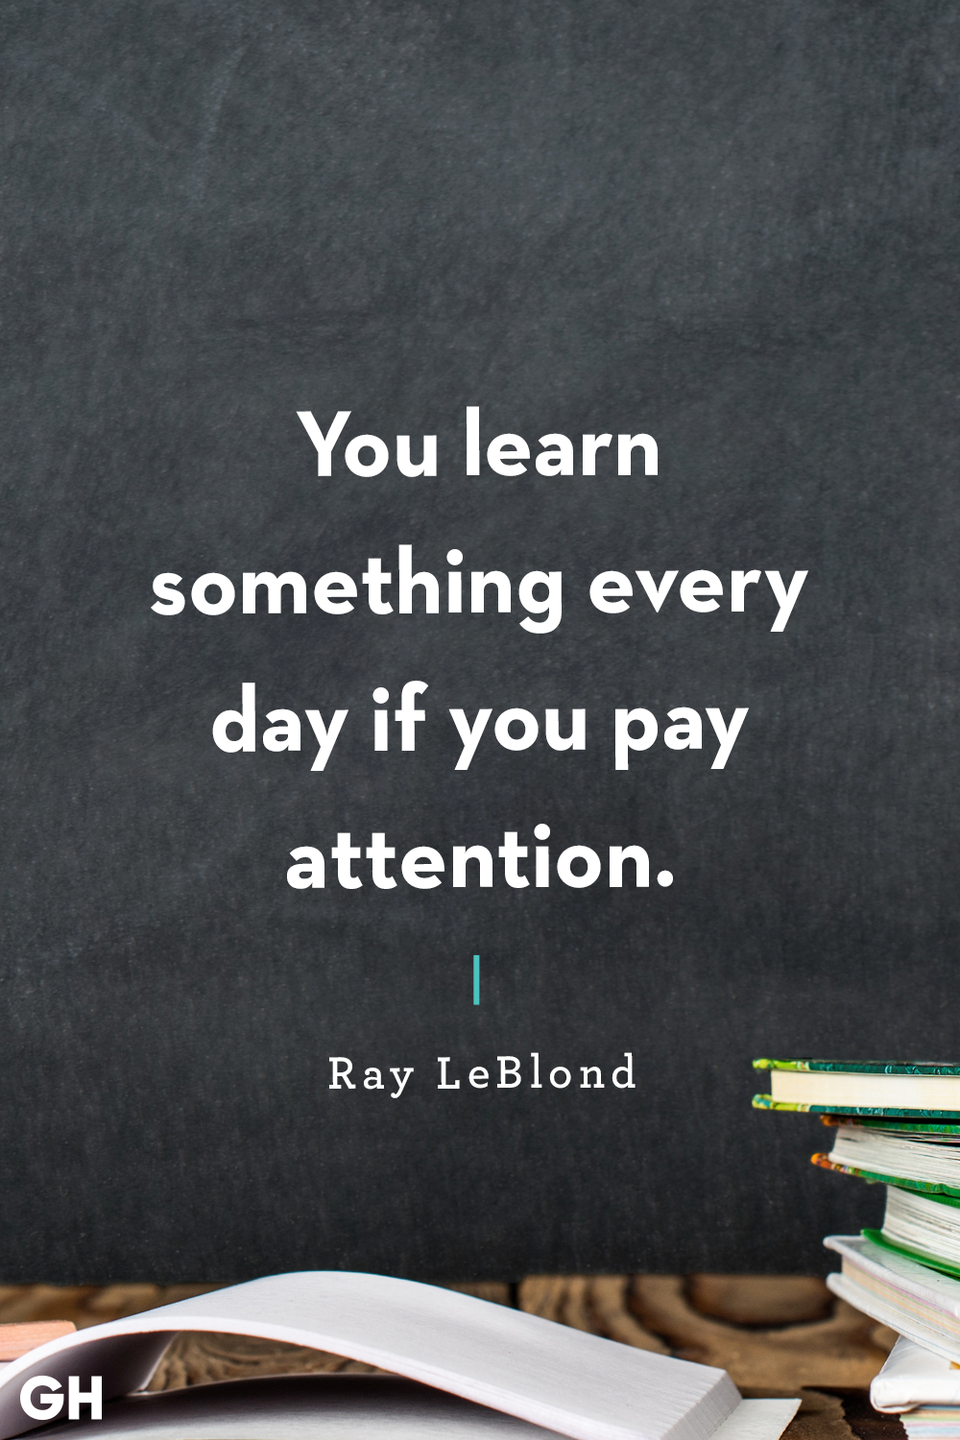 <p>You learn something every day if you pay attention.</p>